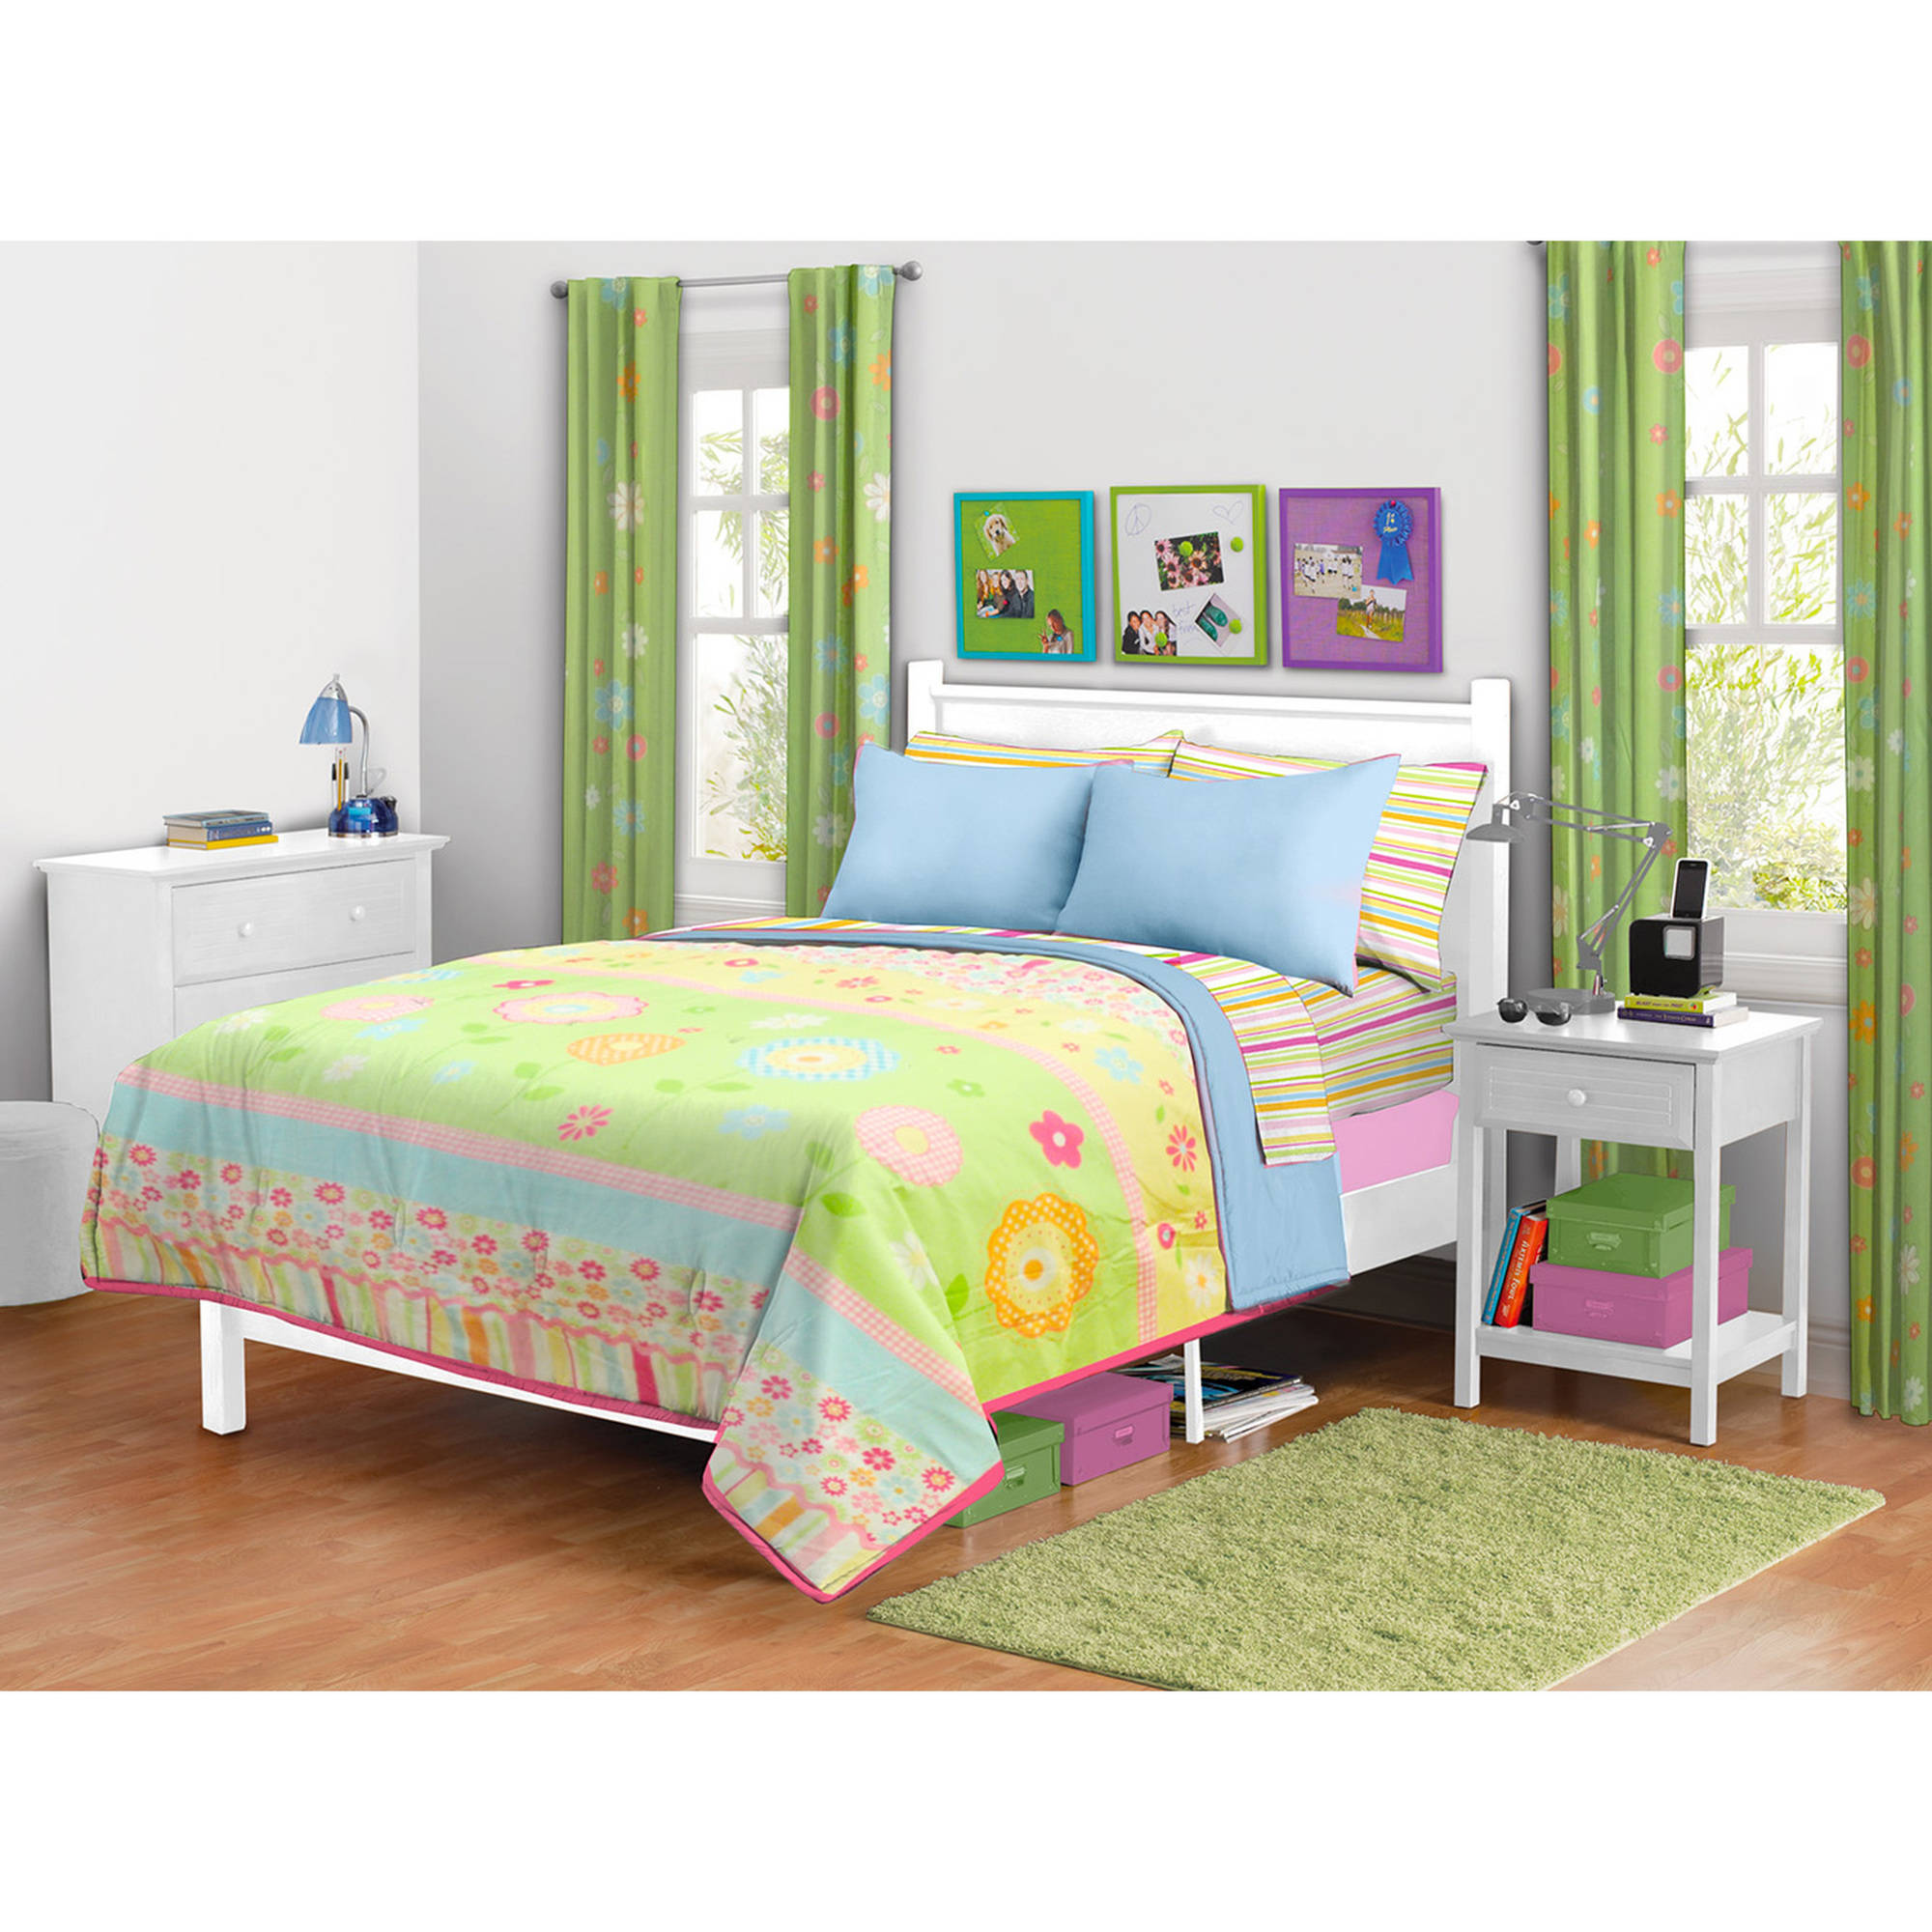 Mainstays Kids Daisy Floral Comforter, Twin/Full